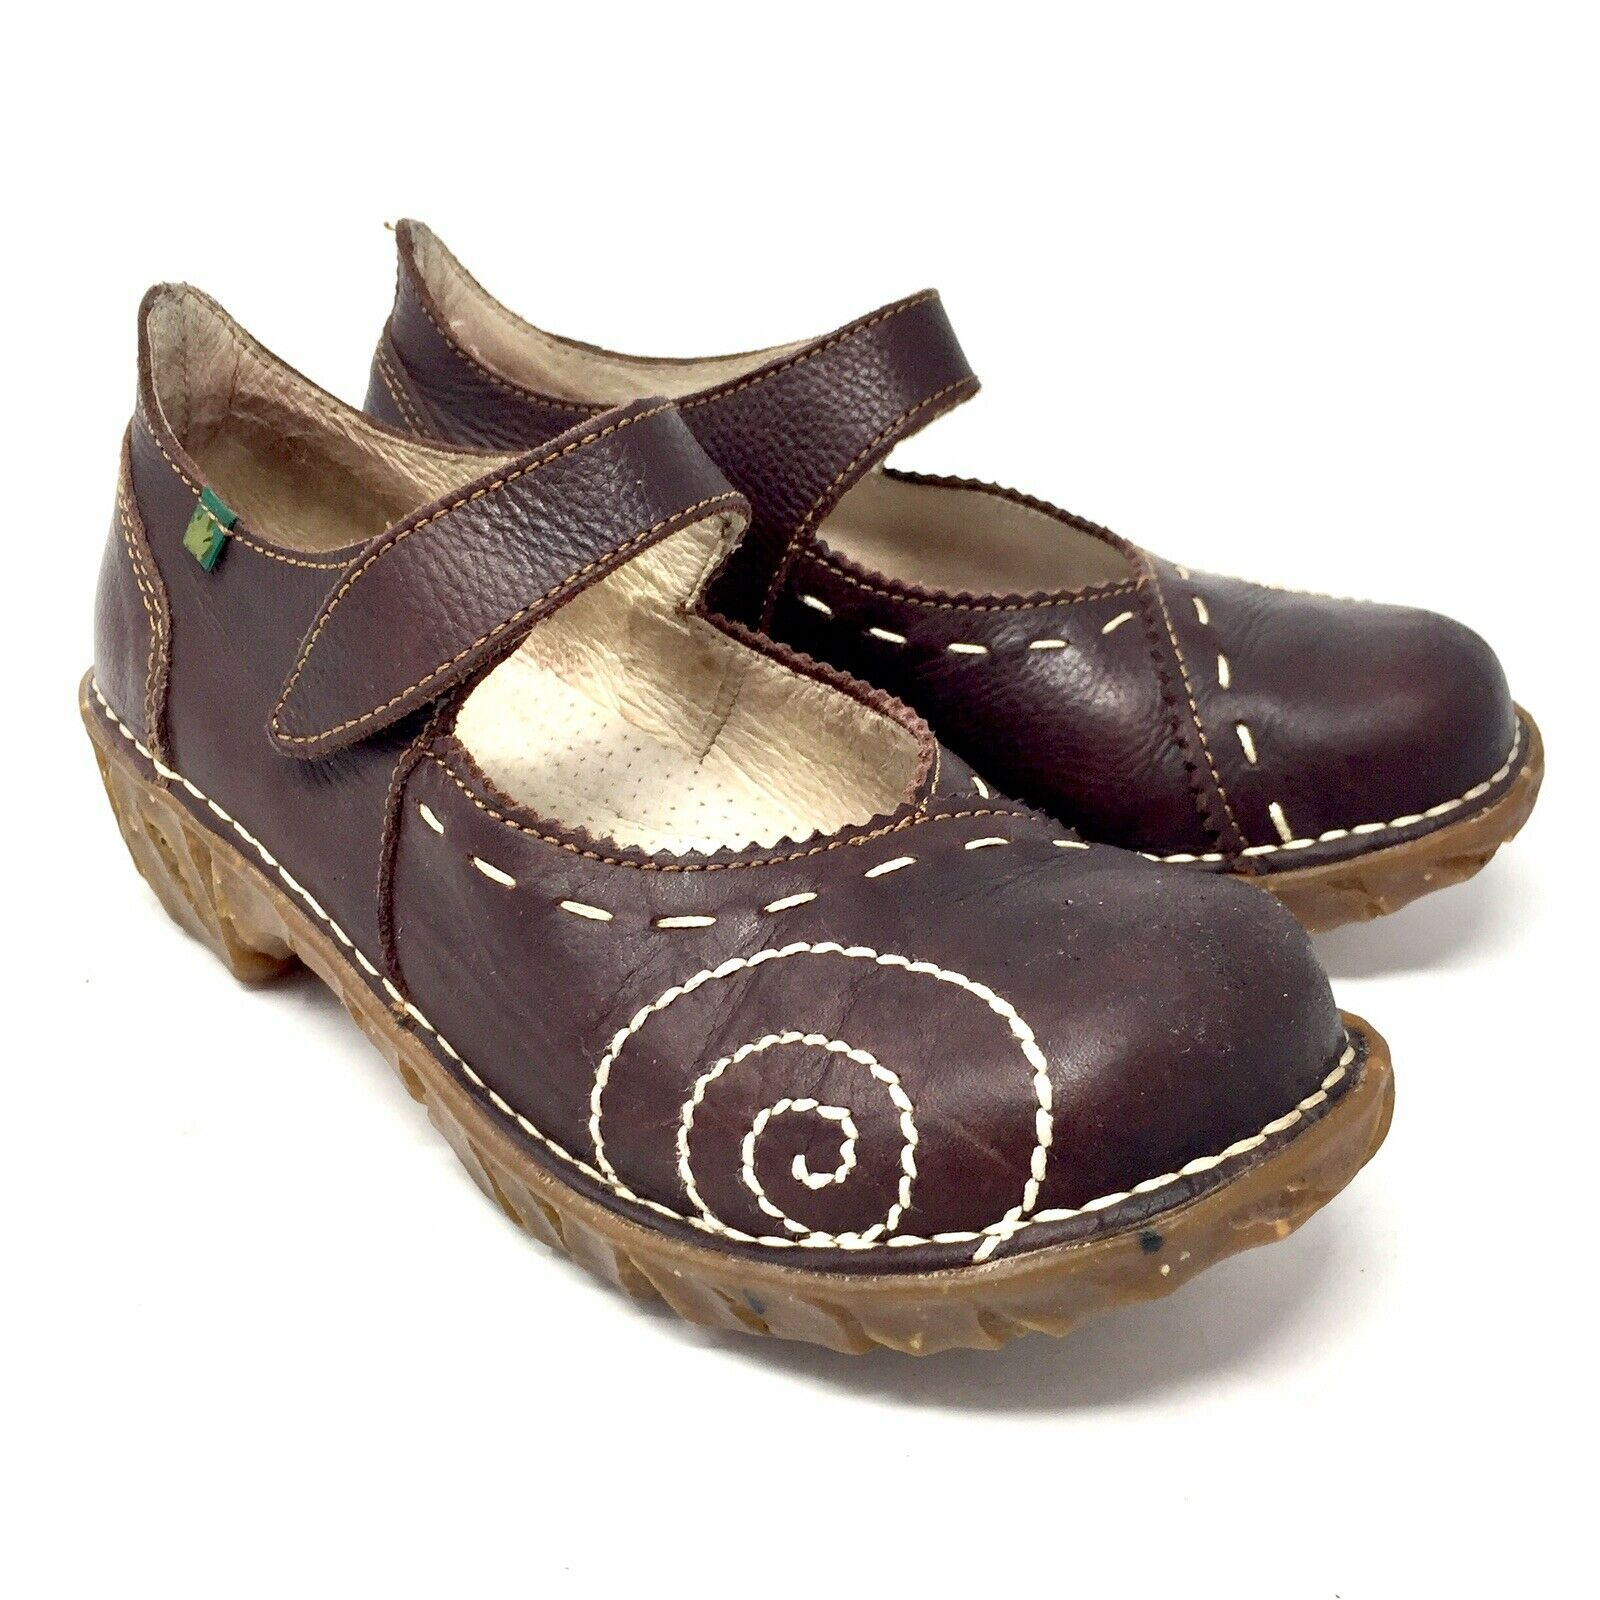 El Naturalista Mary Jane Yggdrasil Brown Stitched Clogs Women's 36 US 6 - 6.5